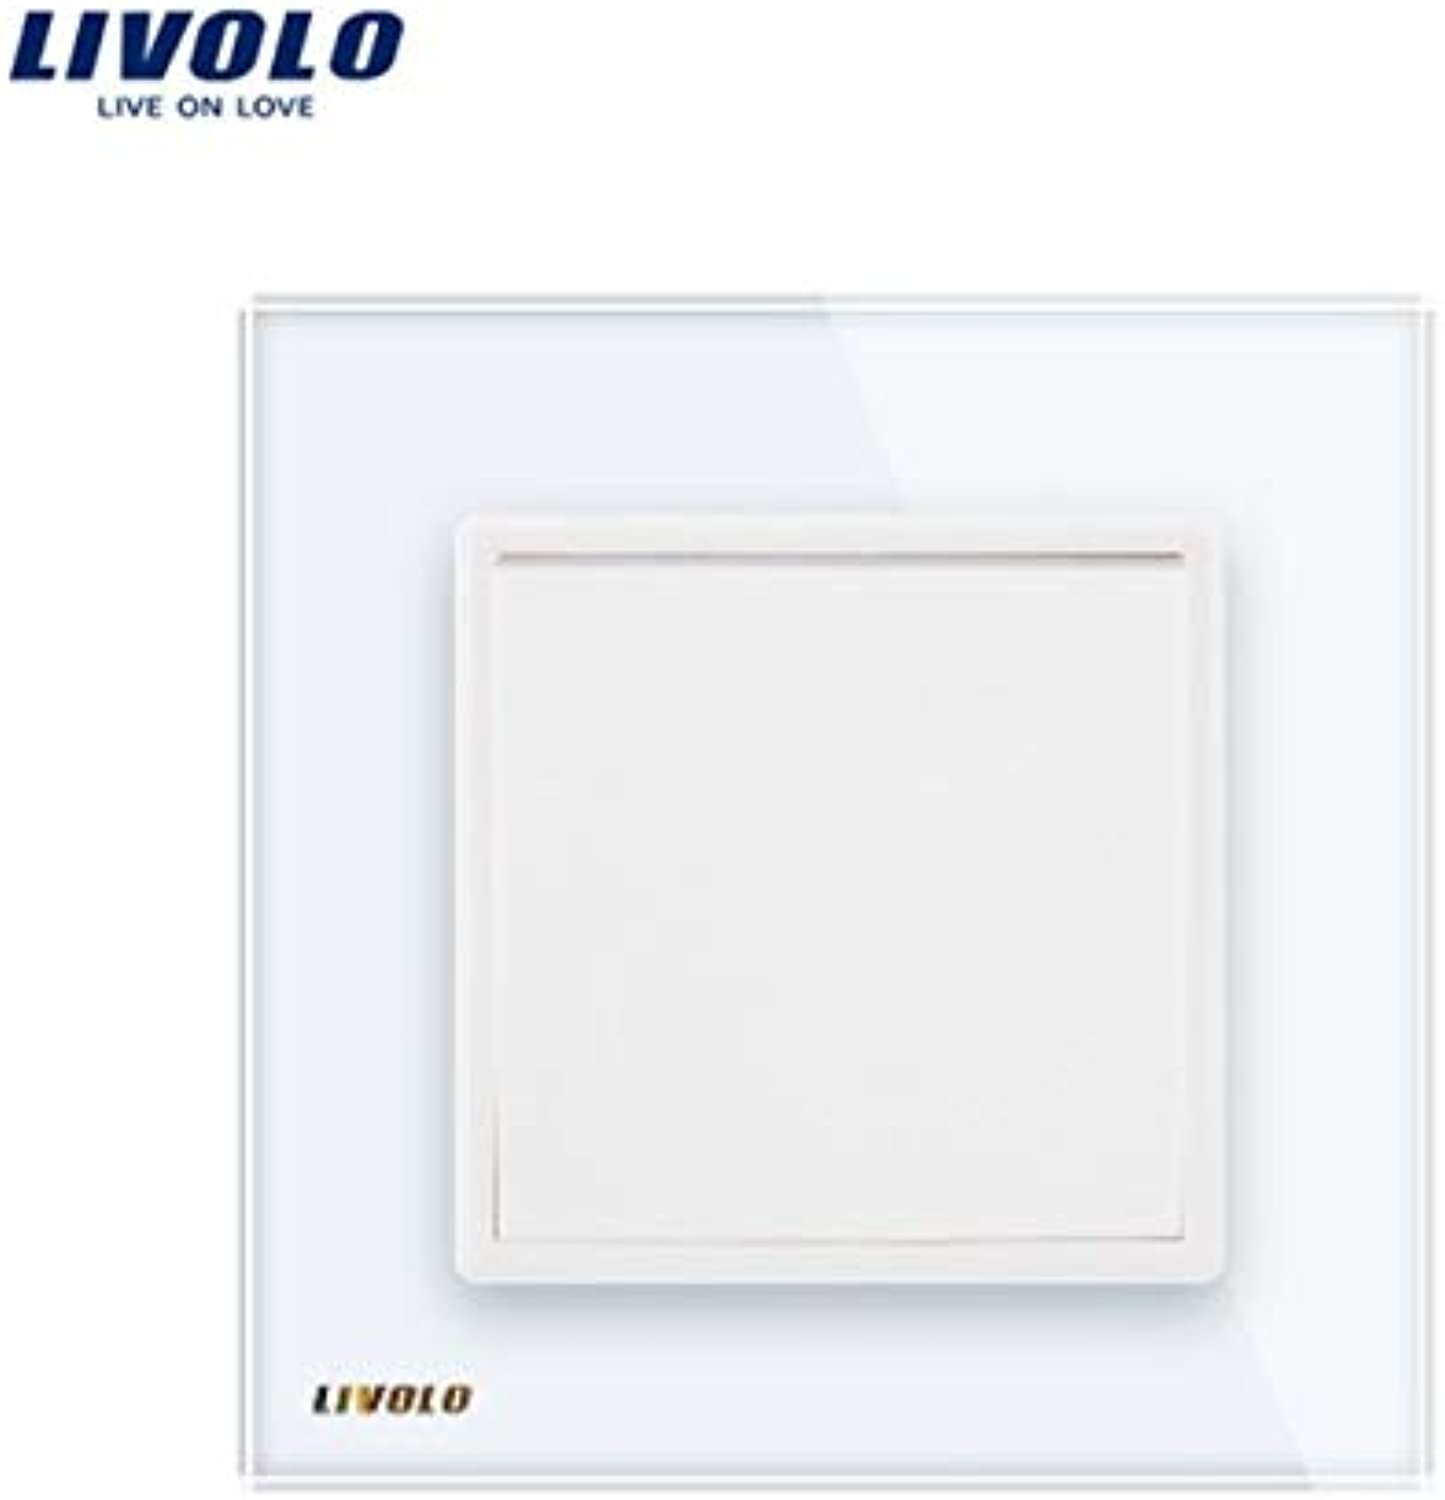 2018 Livolo Manufacturer EU Standard Luxury White Crystal Glass Panel, 1 Gang 1 Way Push Button Switch, VLC7K111  (color  White, Number of Gangs  1Gang)